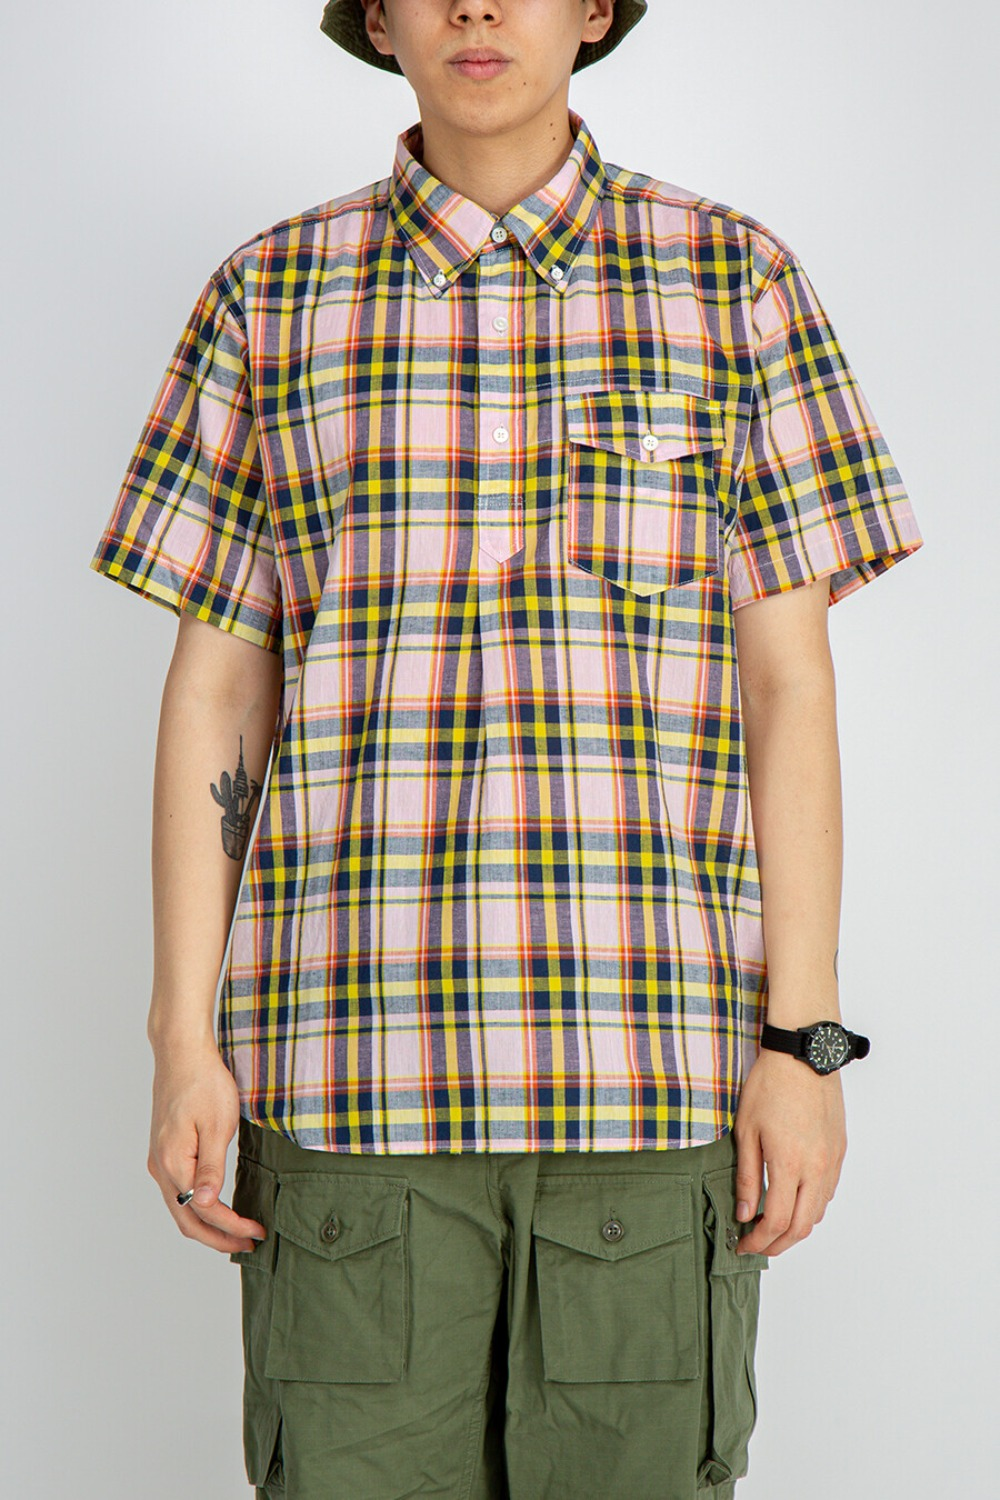 POPOVER BD SHIRT CL MADRAS PLAID PINK YELLOW